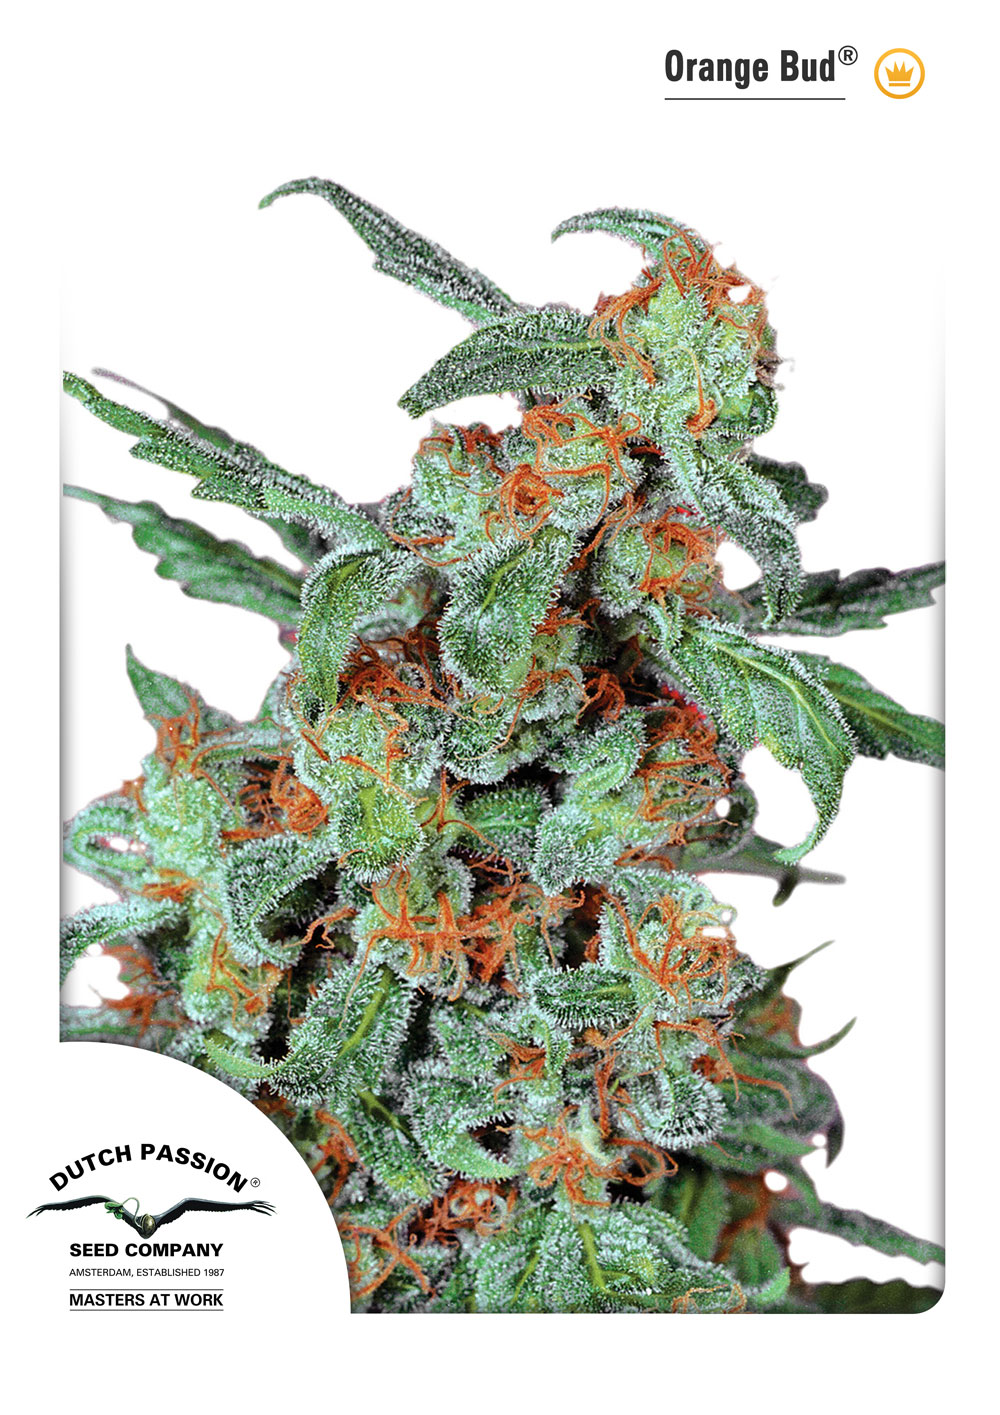 Recenzja Odmiany Orange Bud od Dutch Passion, Dutch Seeds